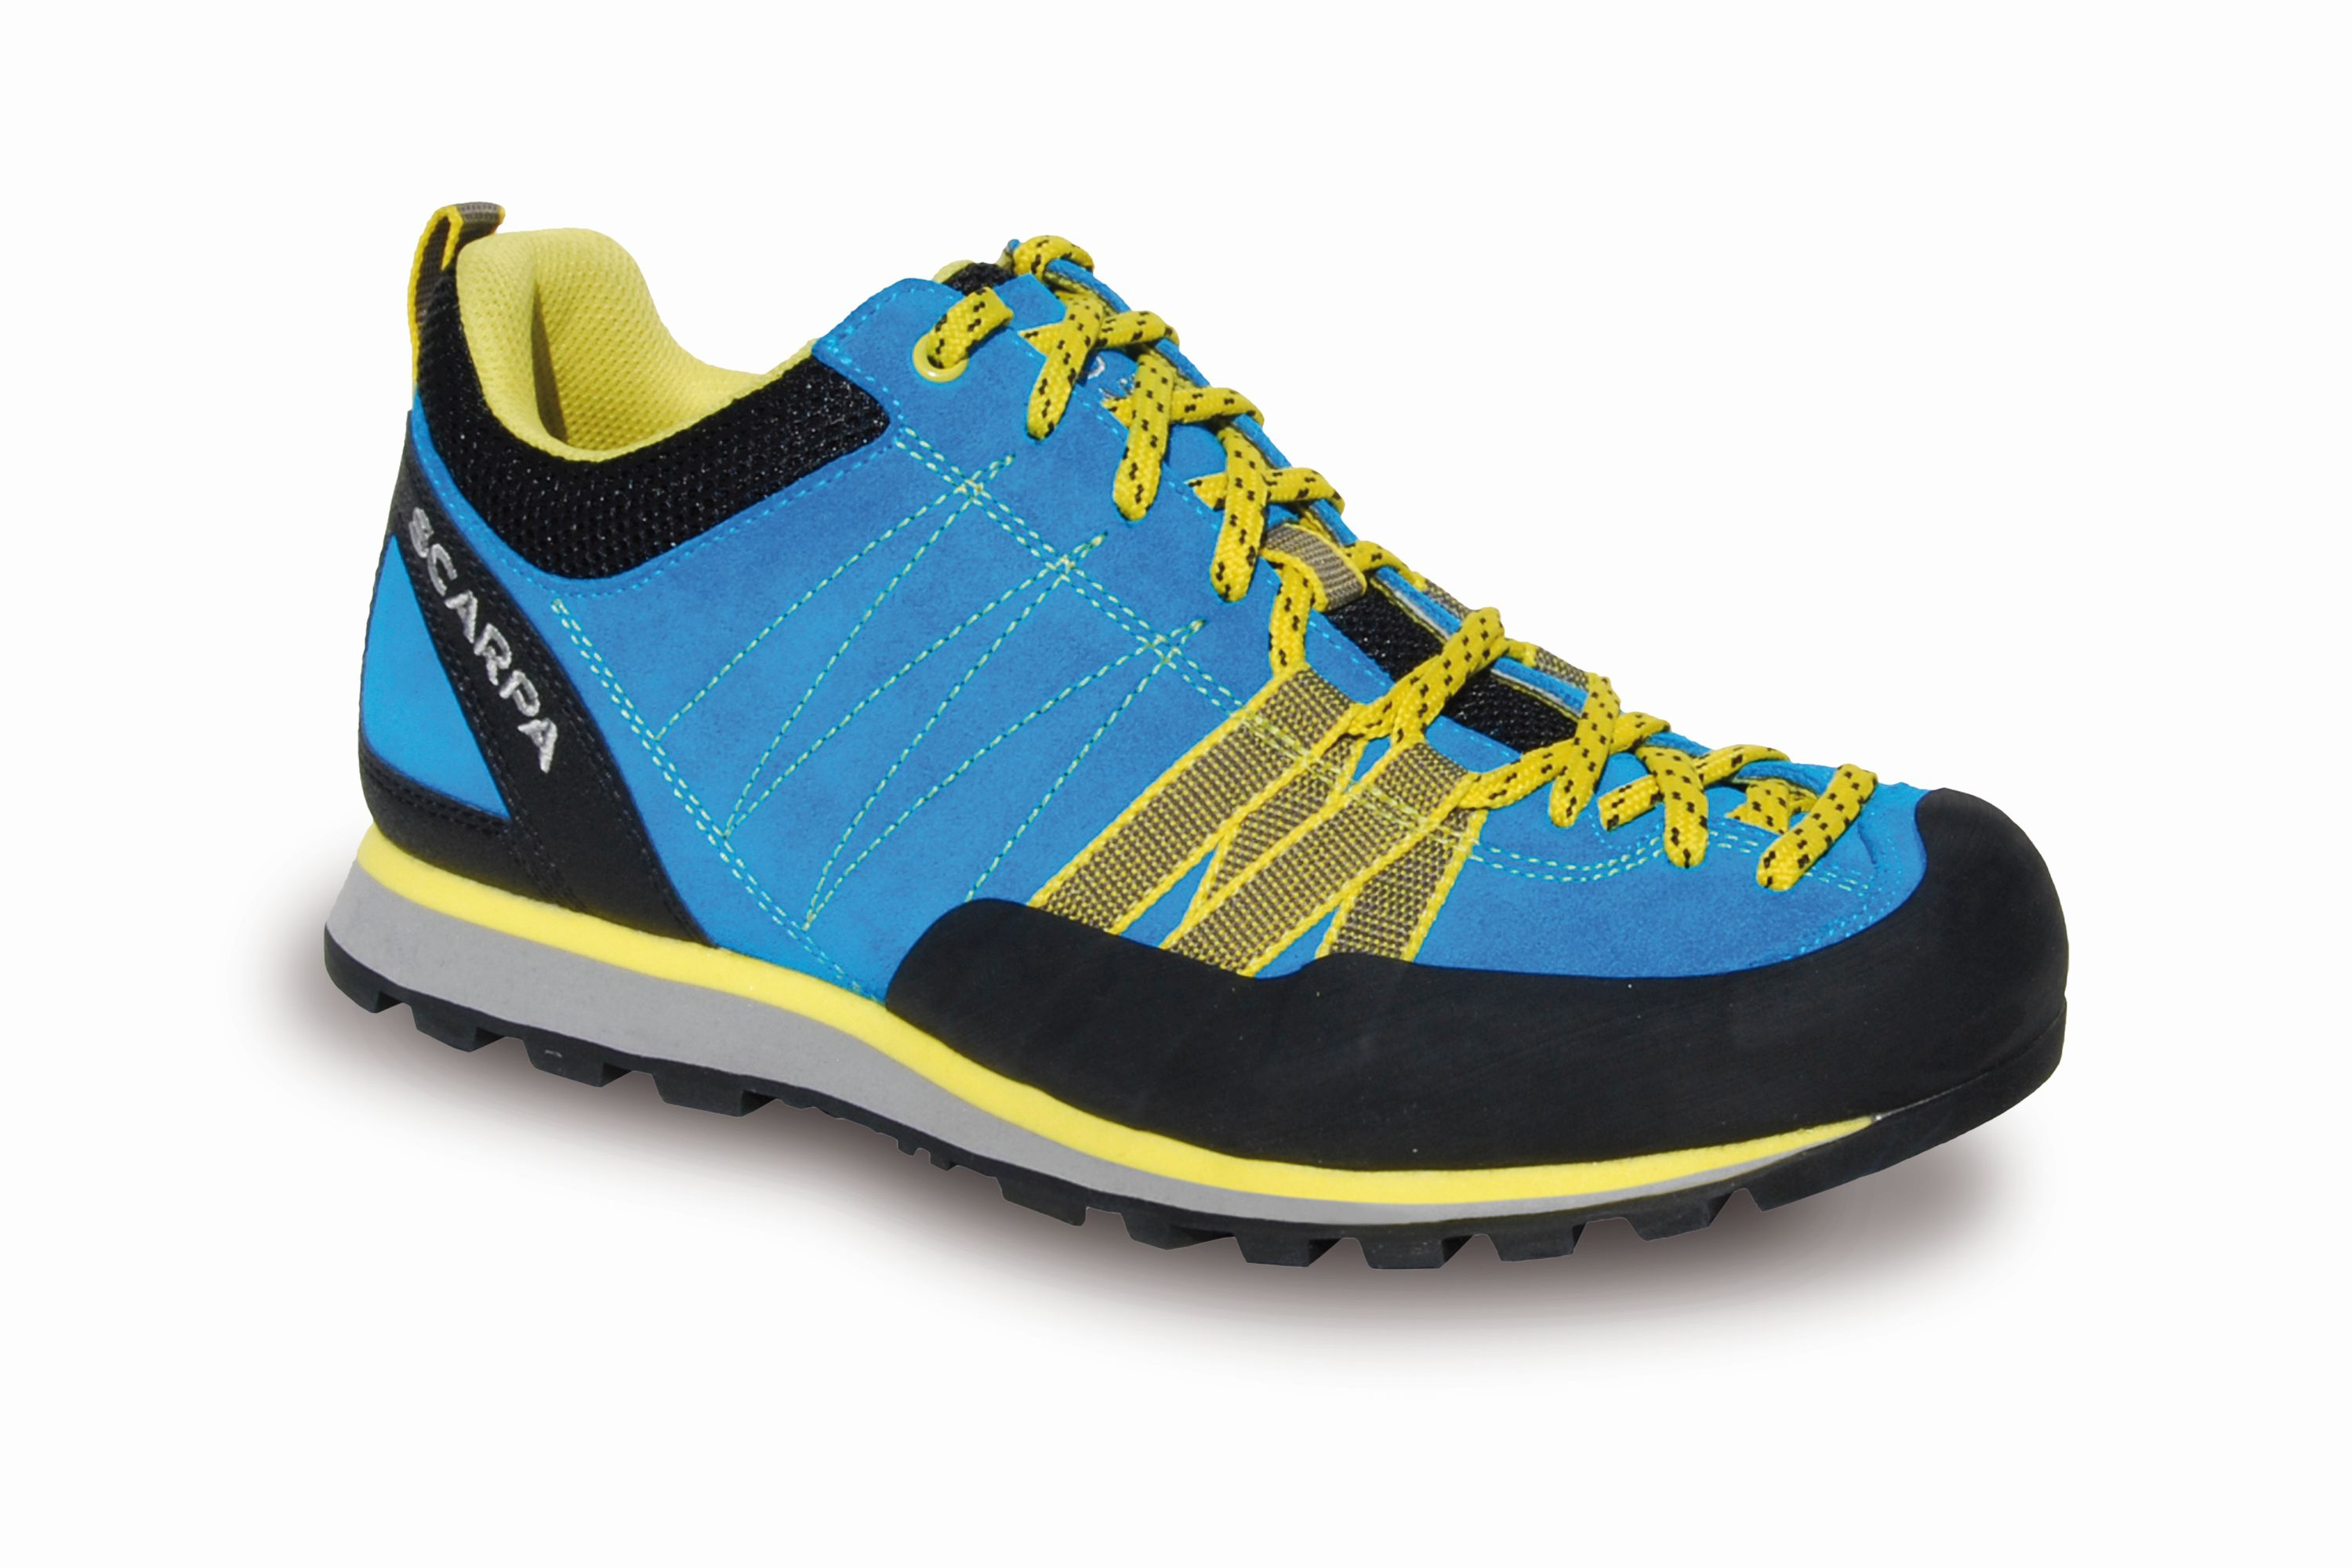 Scarpa Crux Wmn Hawaian blue/Yellow-30